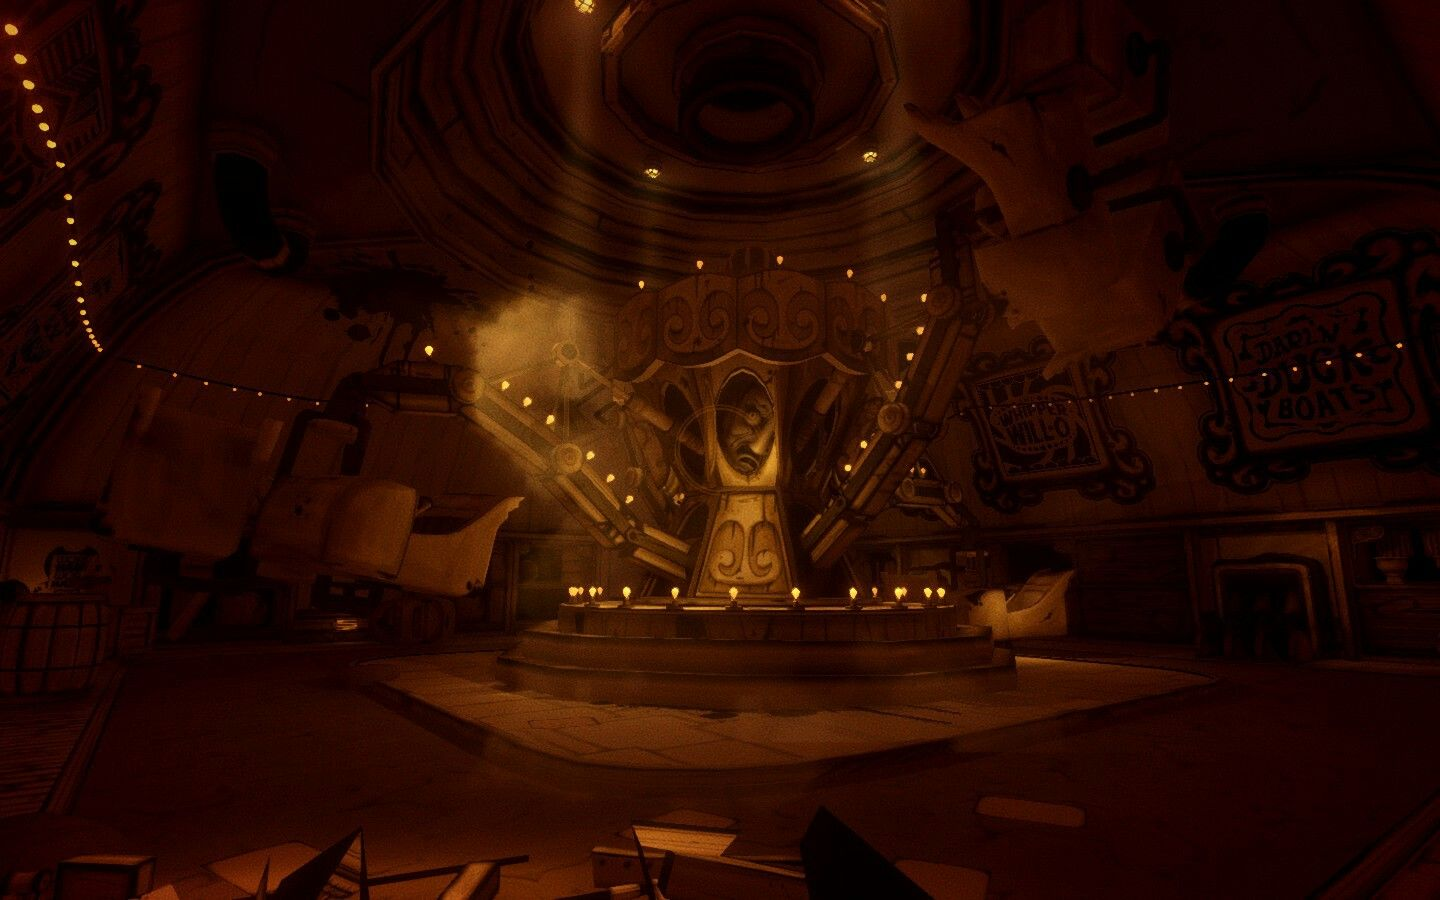 Pin By Bendy On Batim Chapter 4 Bendy And The Ink Machine Ink